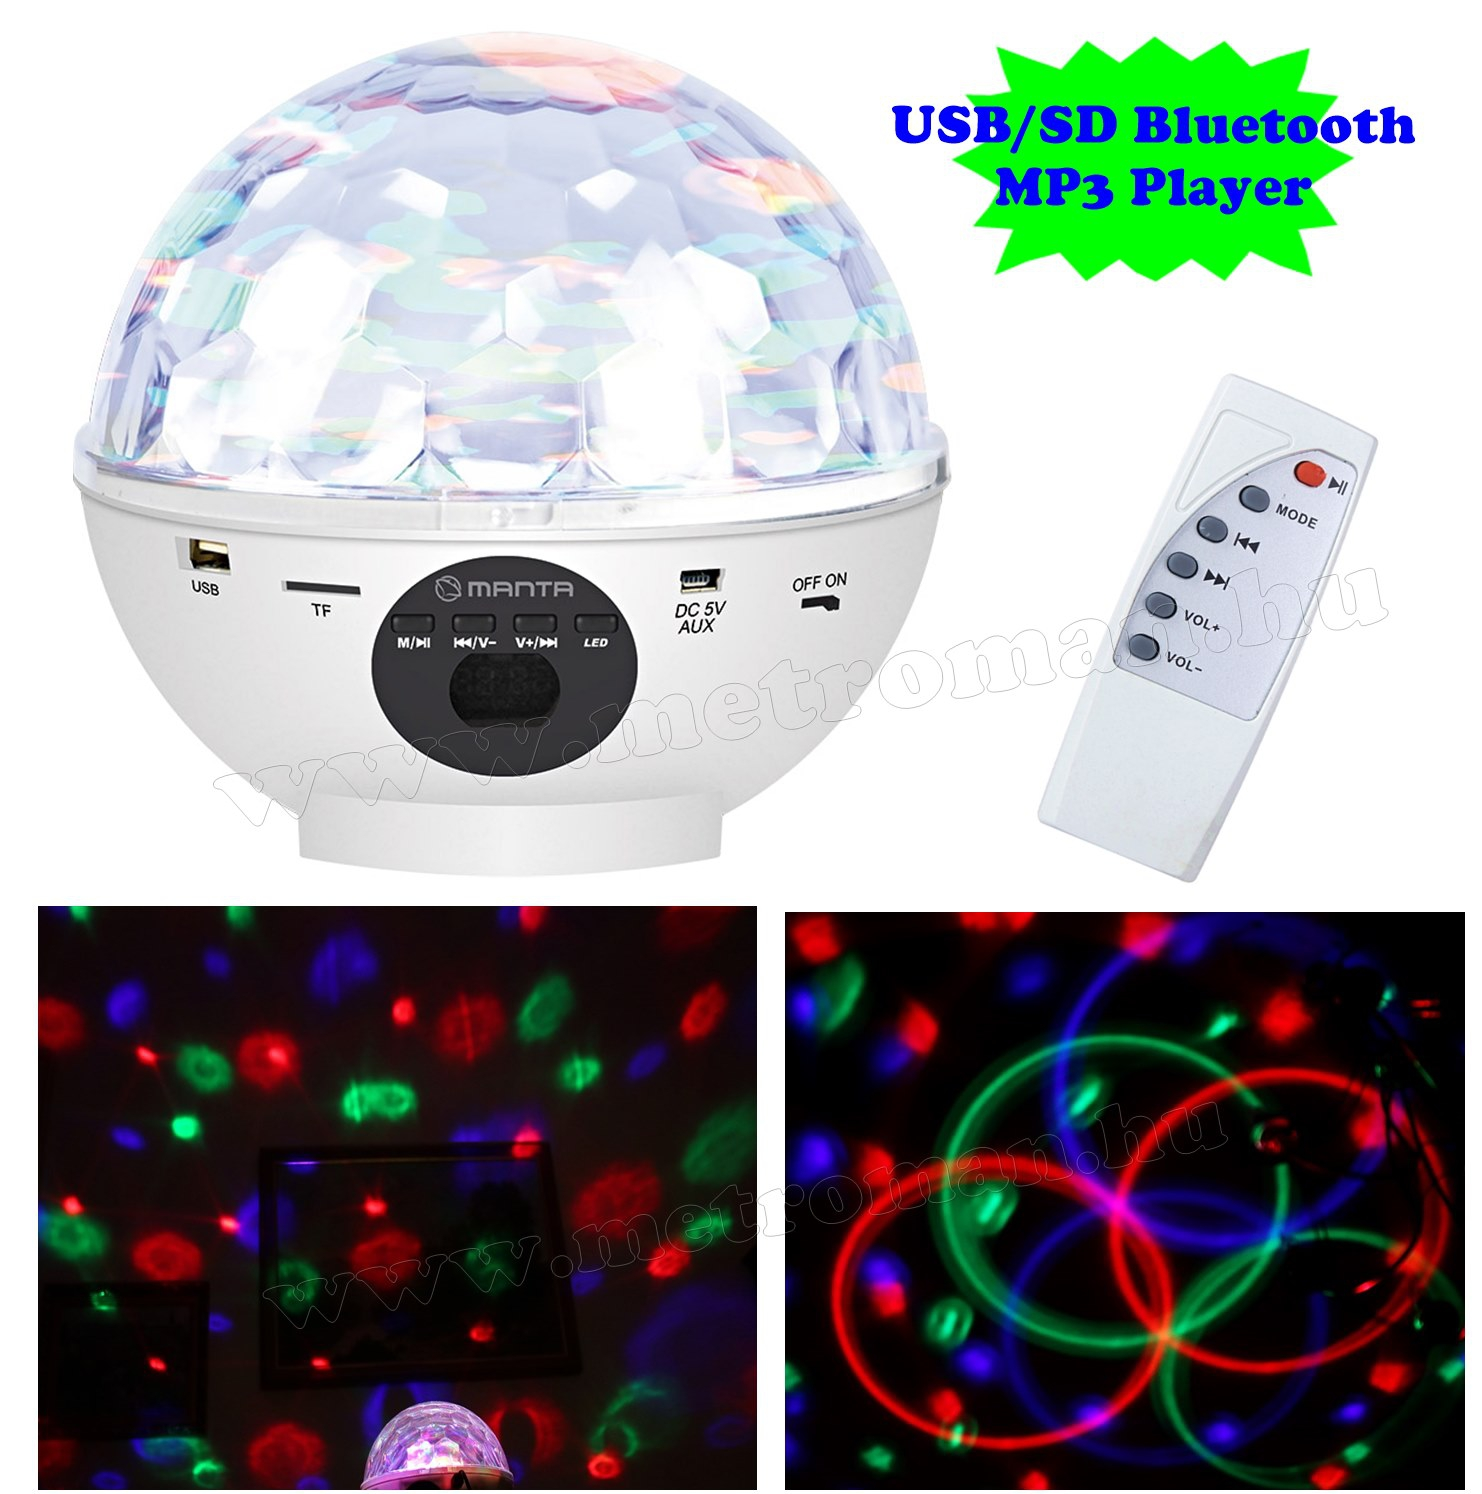 RGB LED Magic diszkó gömb és USB/SD Bluetooth MP3 lejátszó MDL 012 BT